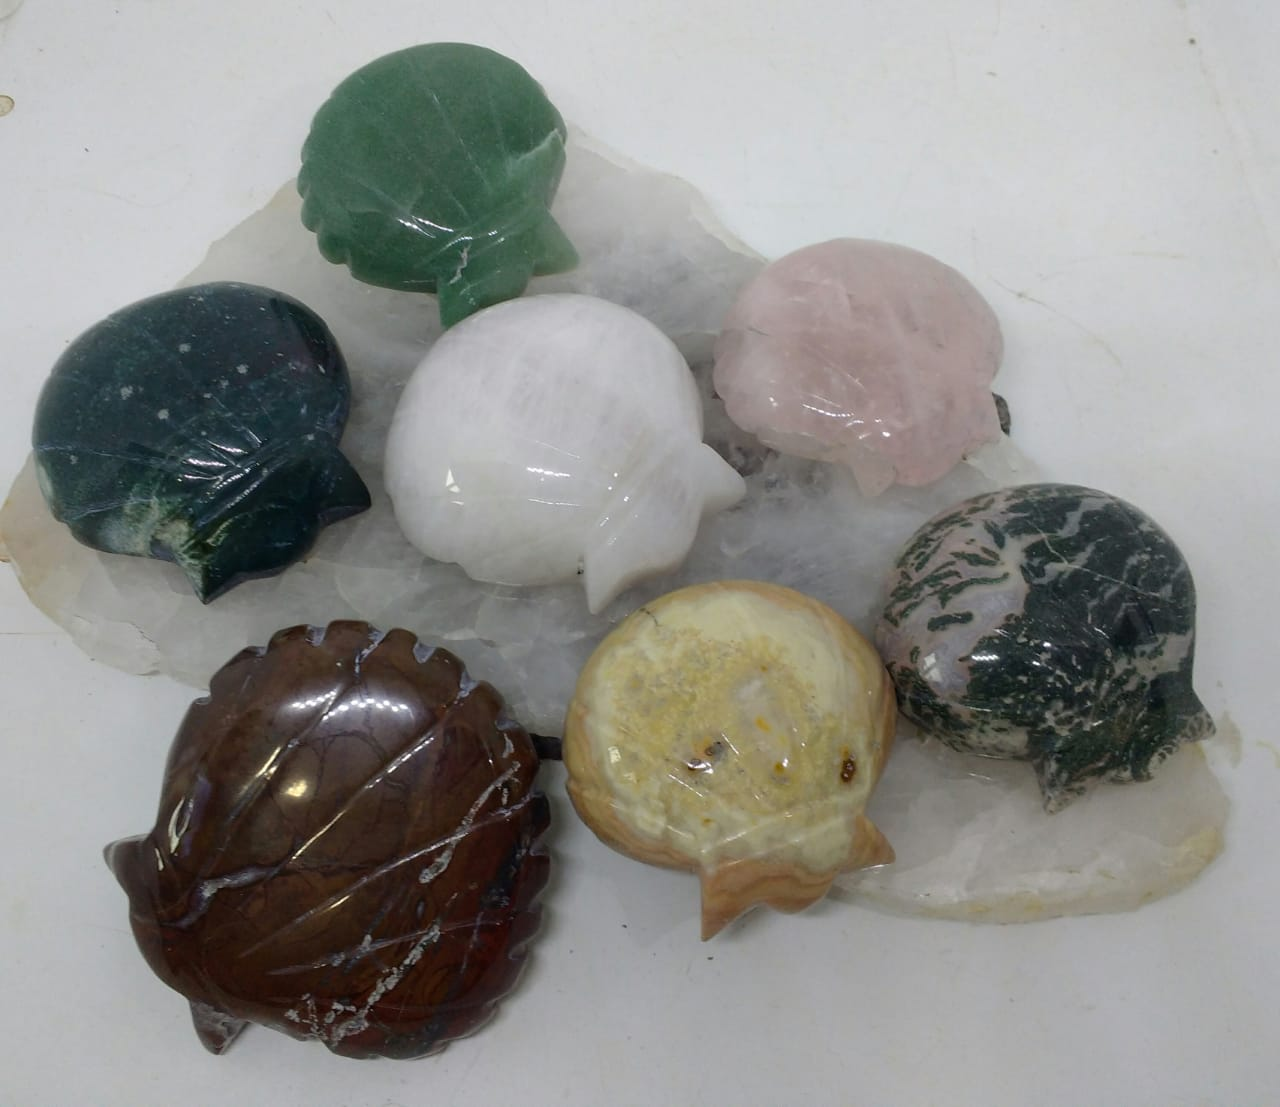 Stones from Uruguay - Gemstone Shell Shapes for Decoration, Gift and Metaphysical